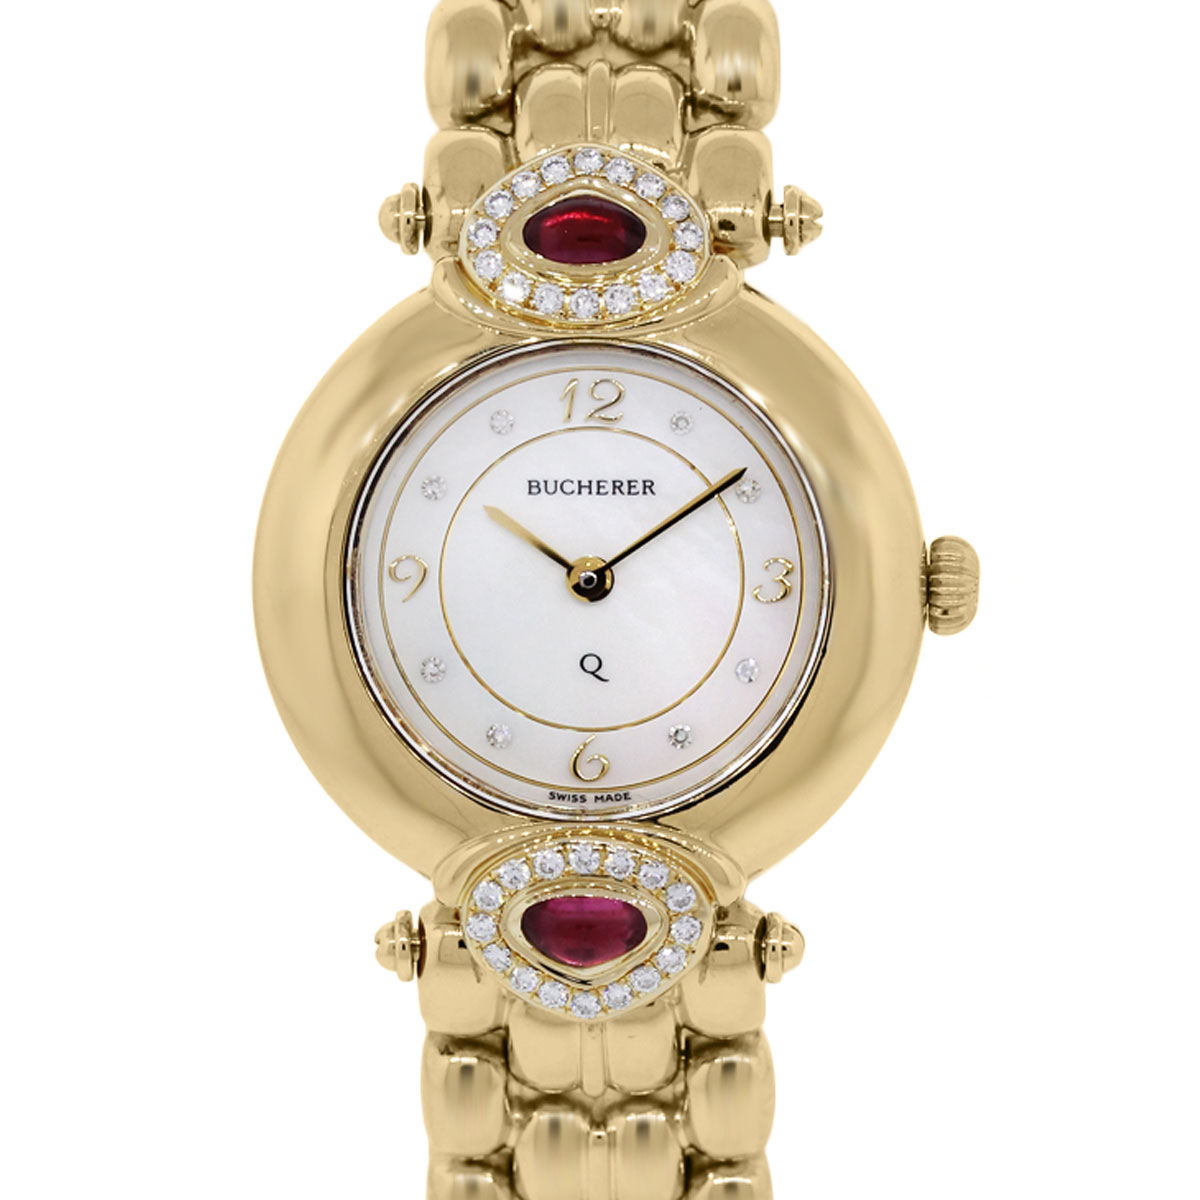 You are viewing this Bucherer Paradiso 18k Yellow Gold Ruby Diamond Watch!